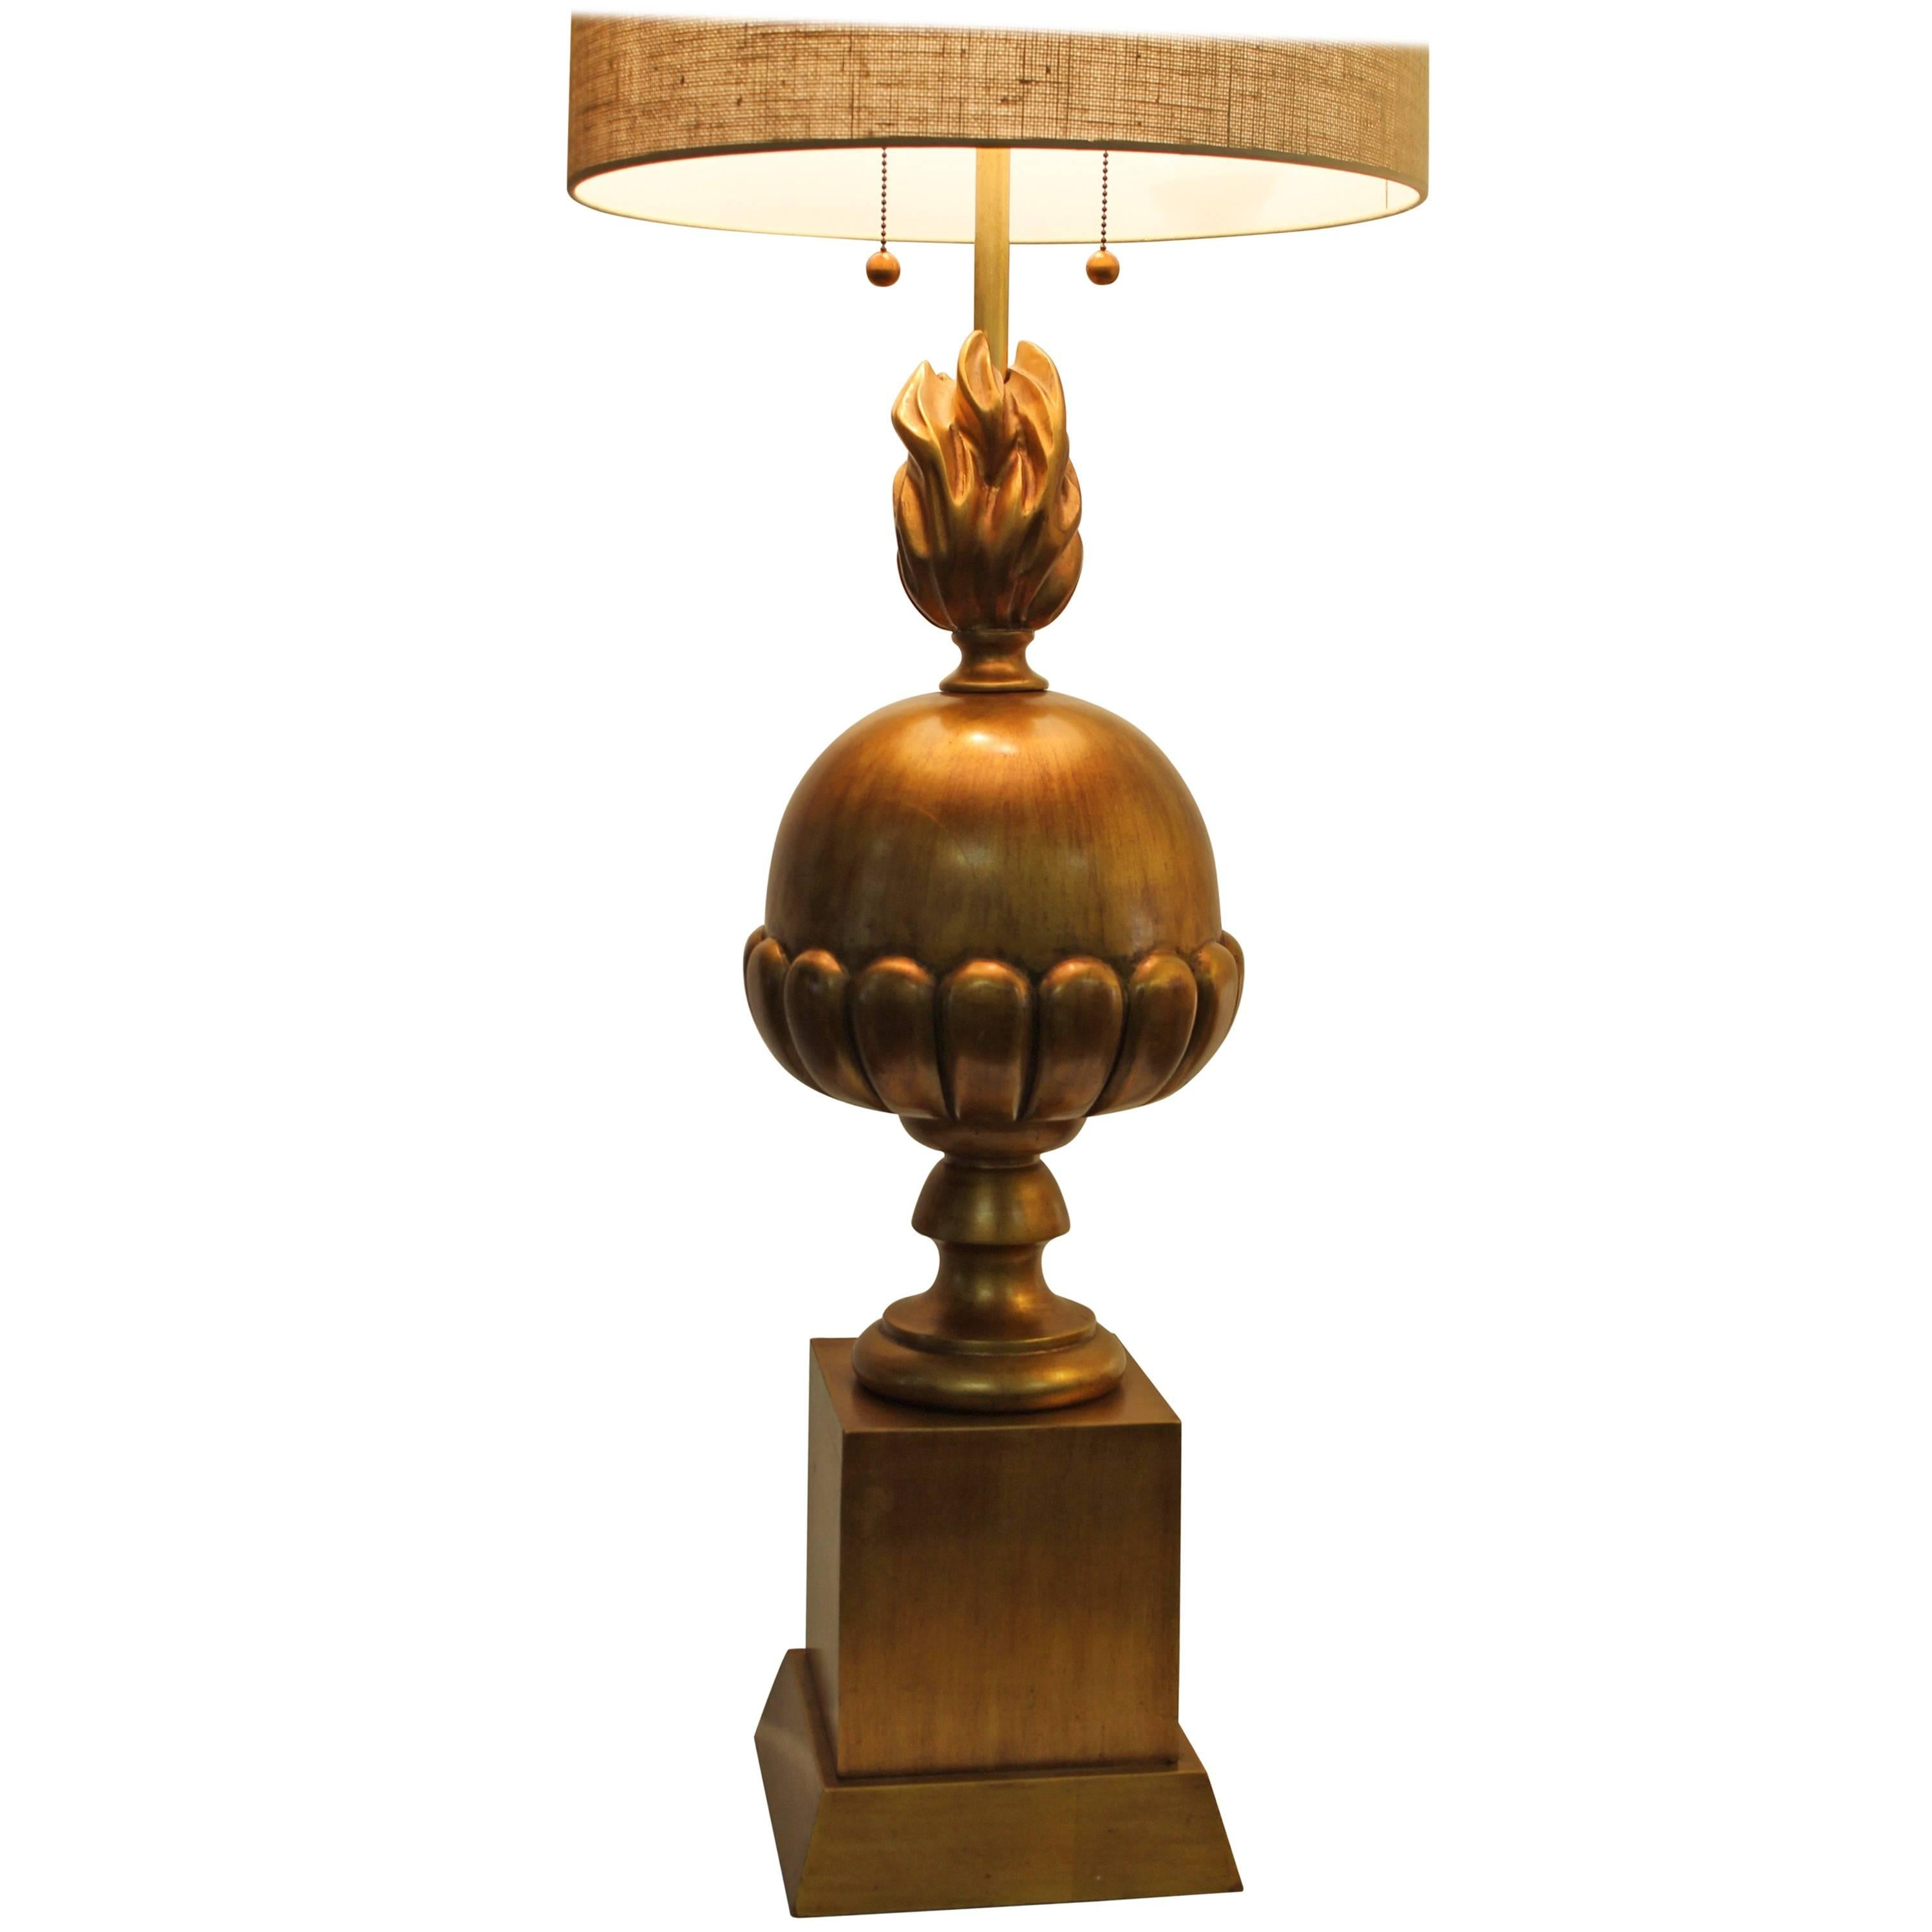 Monumental Lamp by The Marbro Lamp Company, Los Angeles, CA.